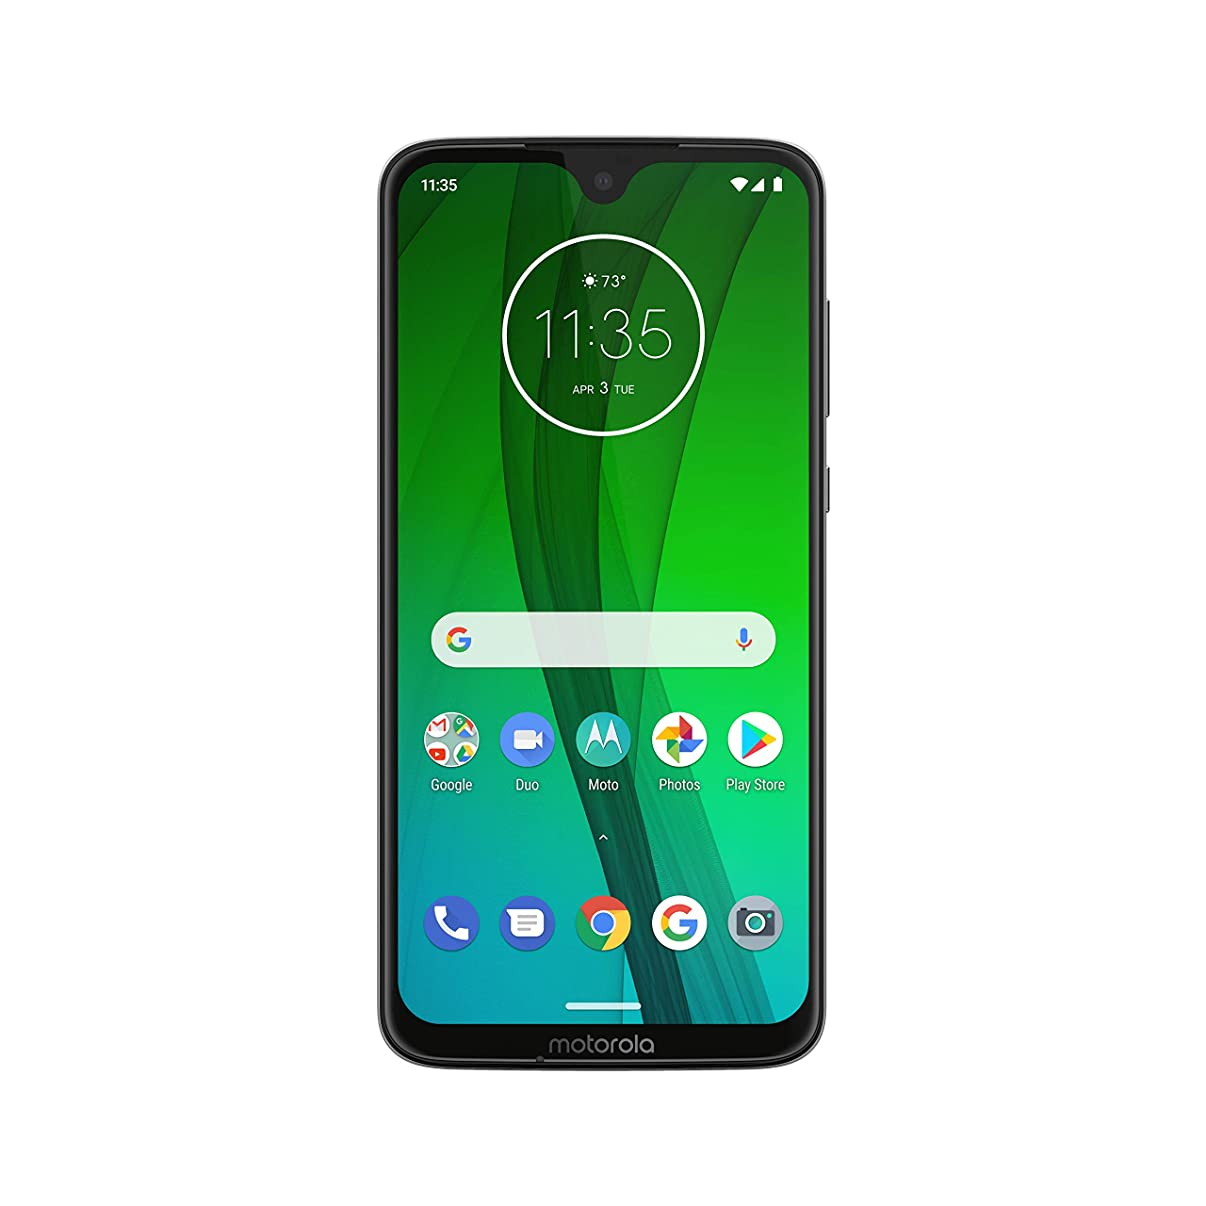 Moto G7 – Unlocked – 64 GB – Clear White (US Warranty) - Verizon, AT&T, T-Mobile, Sprint, Boost, Cricket, Metro